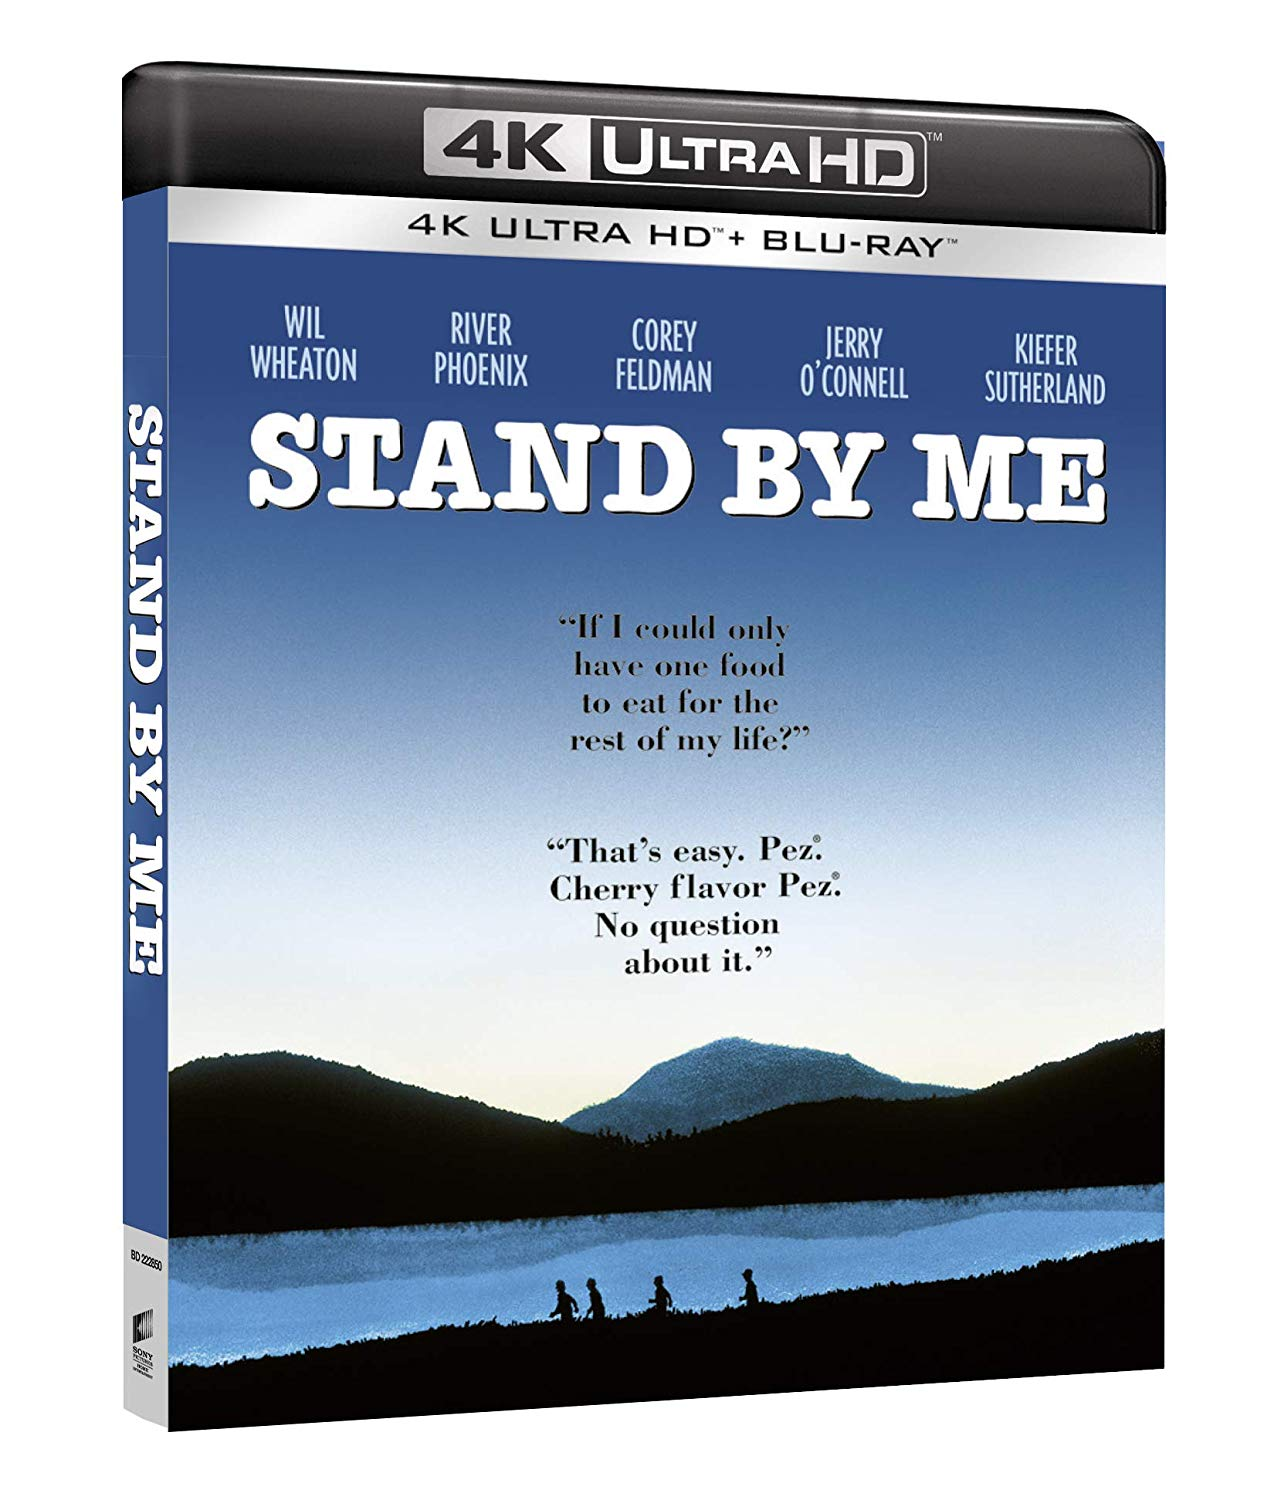 STAND BY ME (BLU-RAY 4K ULTRA HD+BLU-RAY)